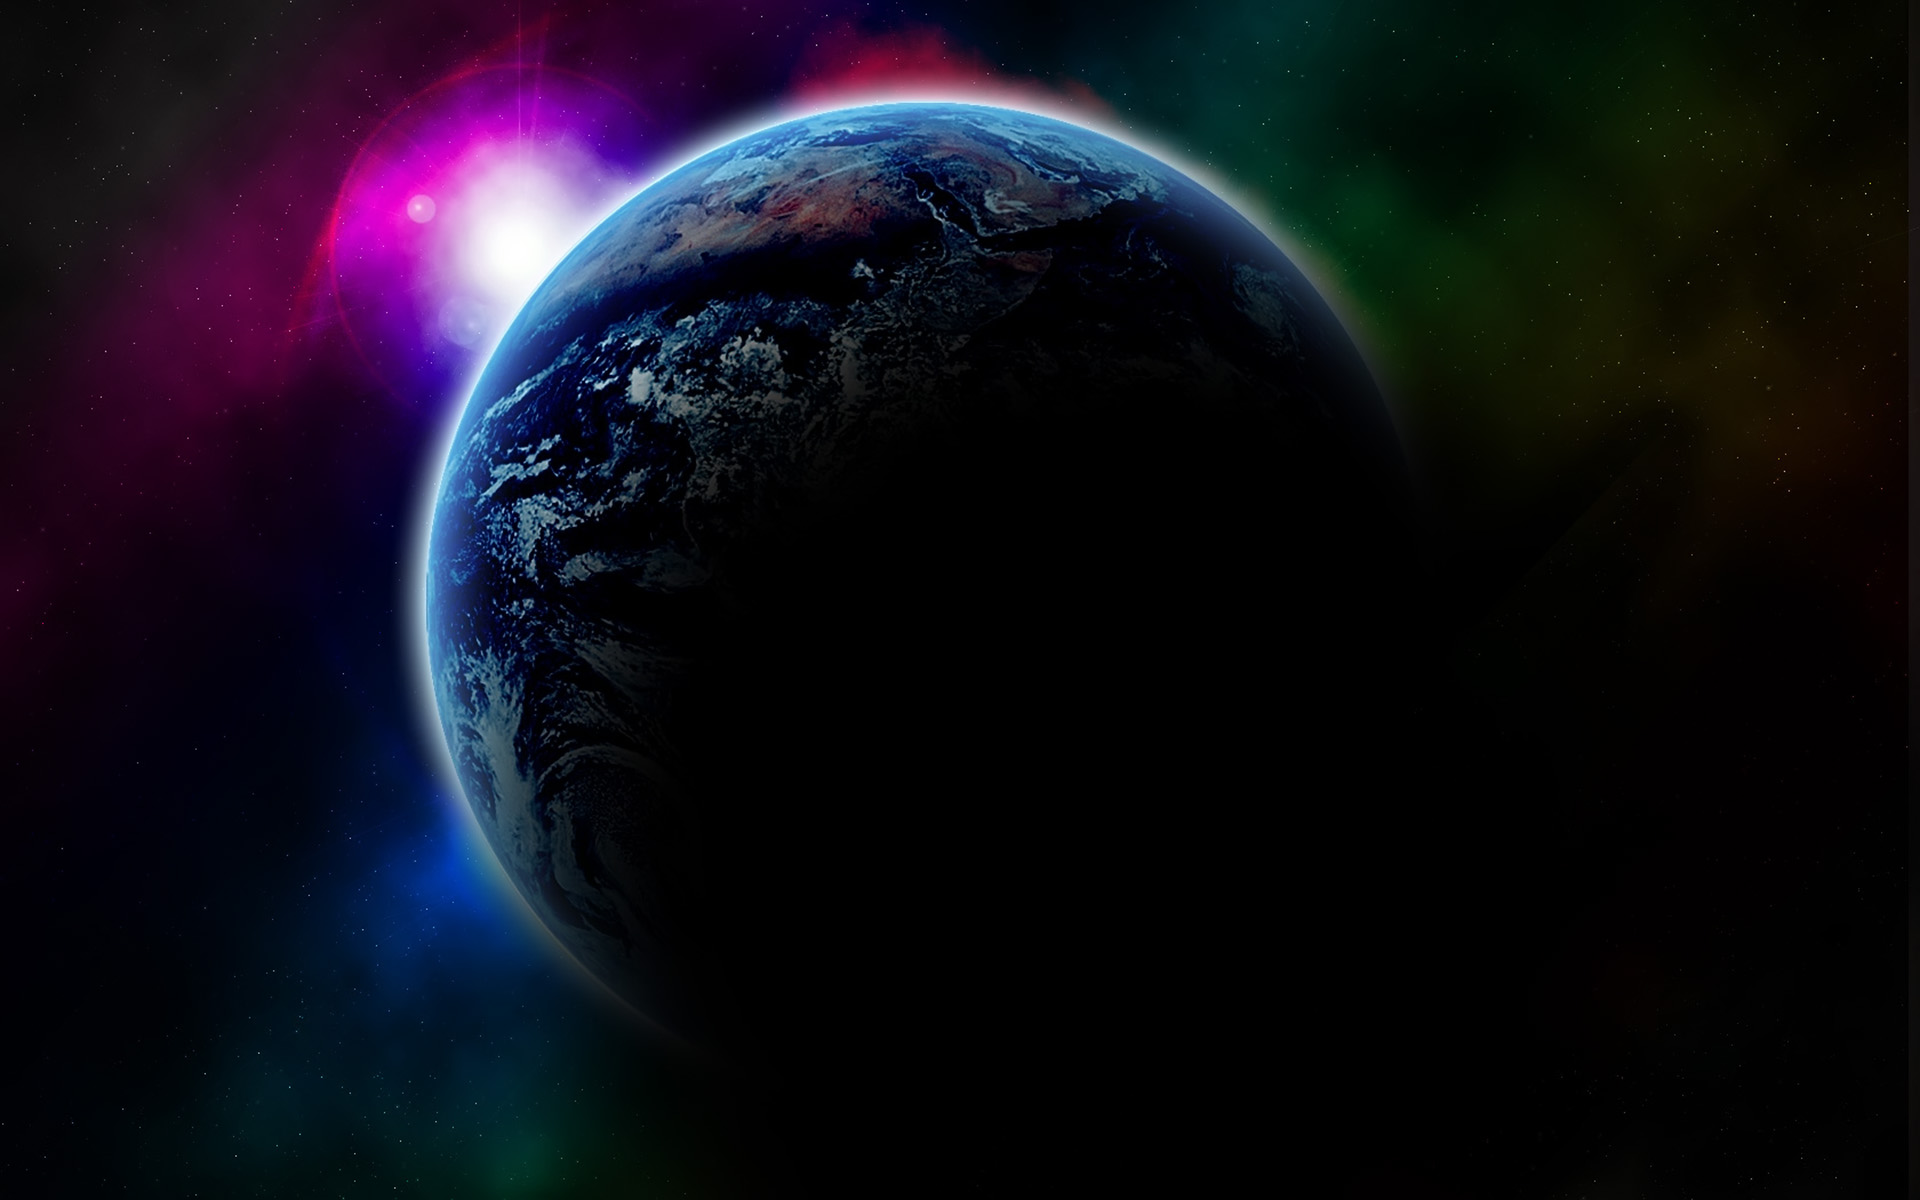 Download free HD Space 3D Wallpaper, image